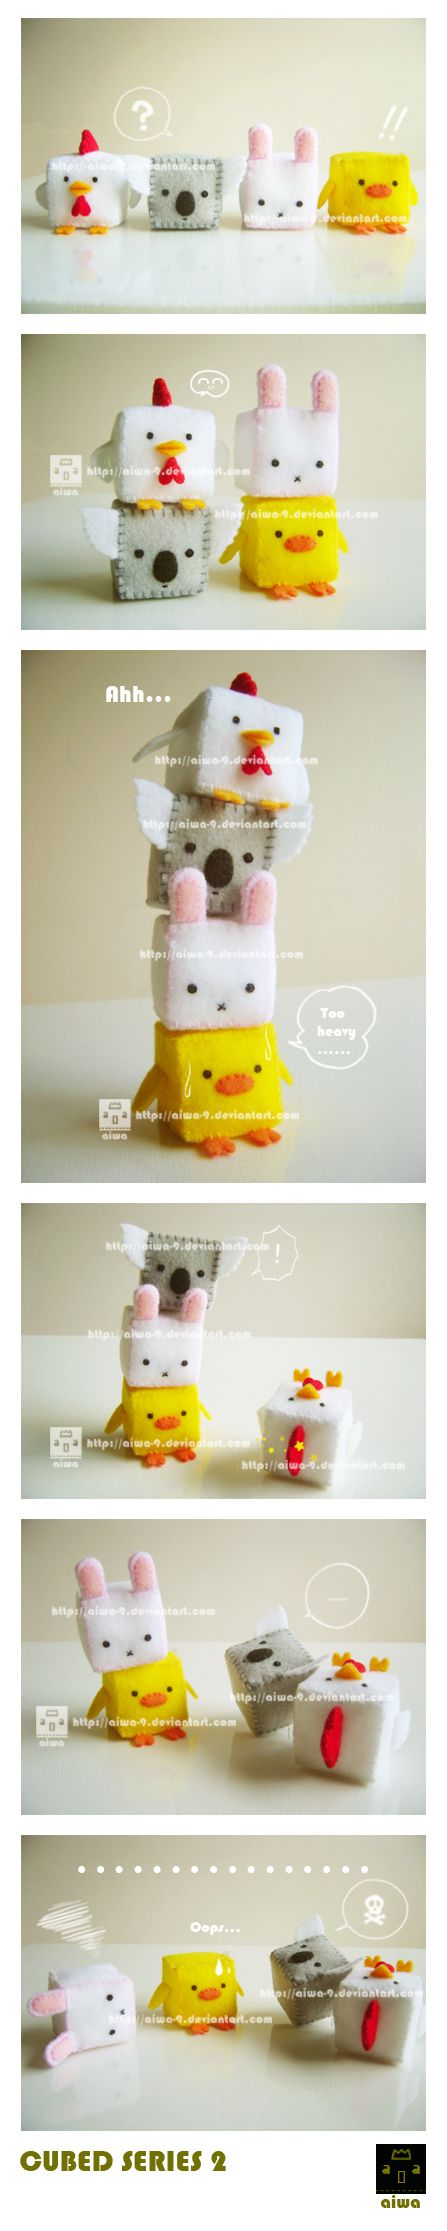 cubed animal plushies [deviantART: ~aiwa-9]